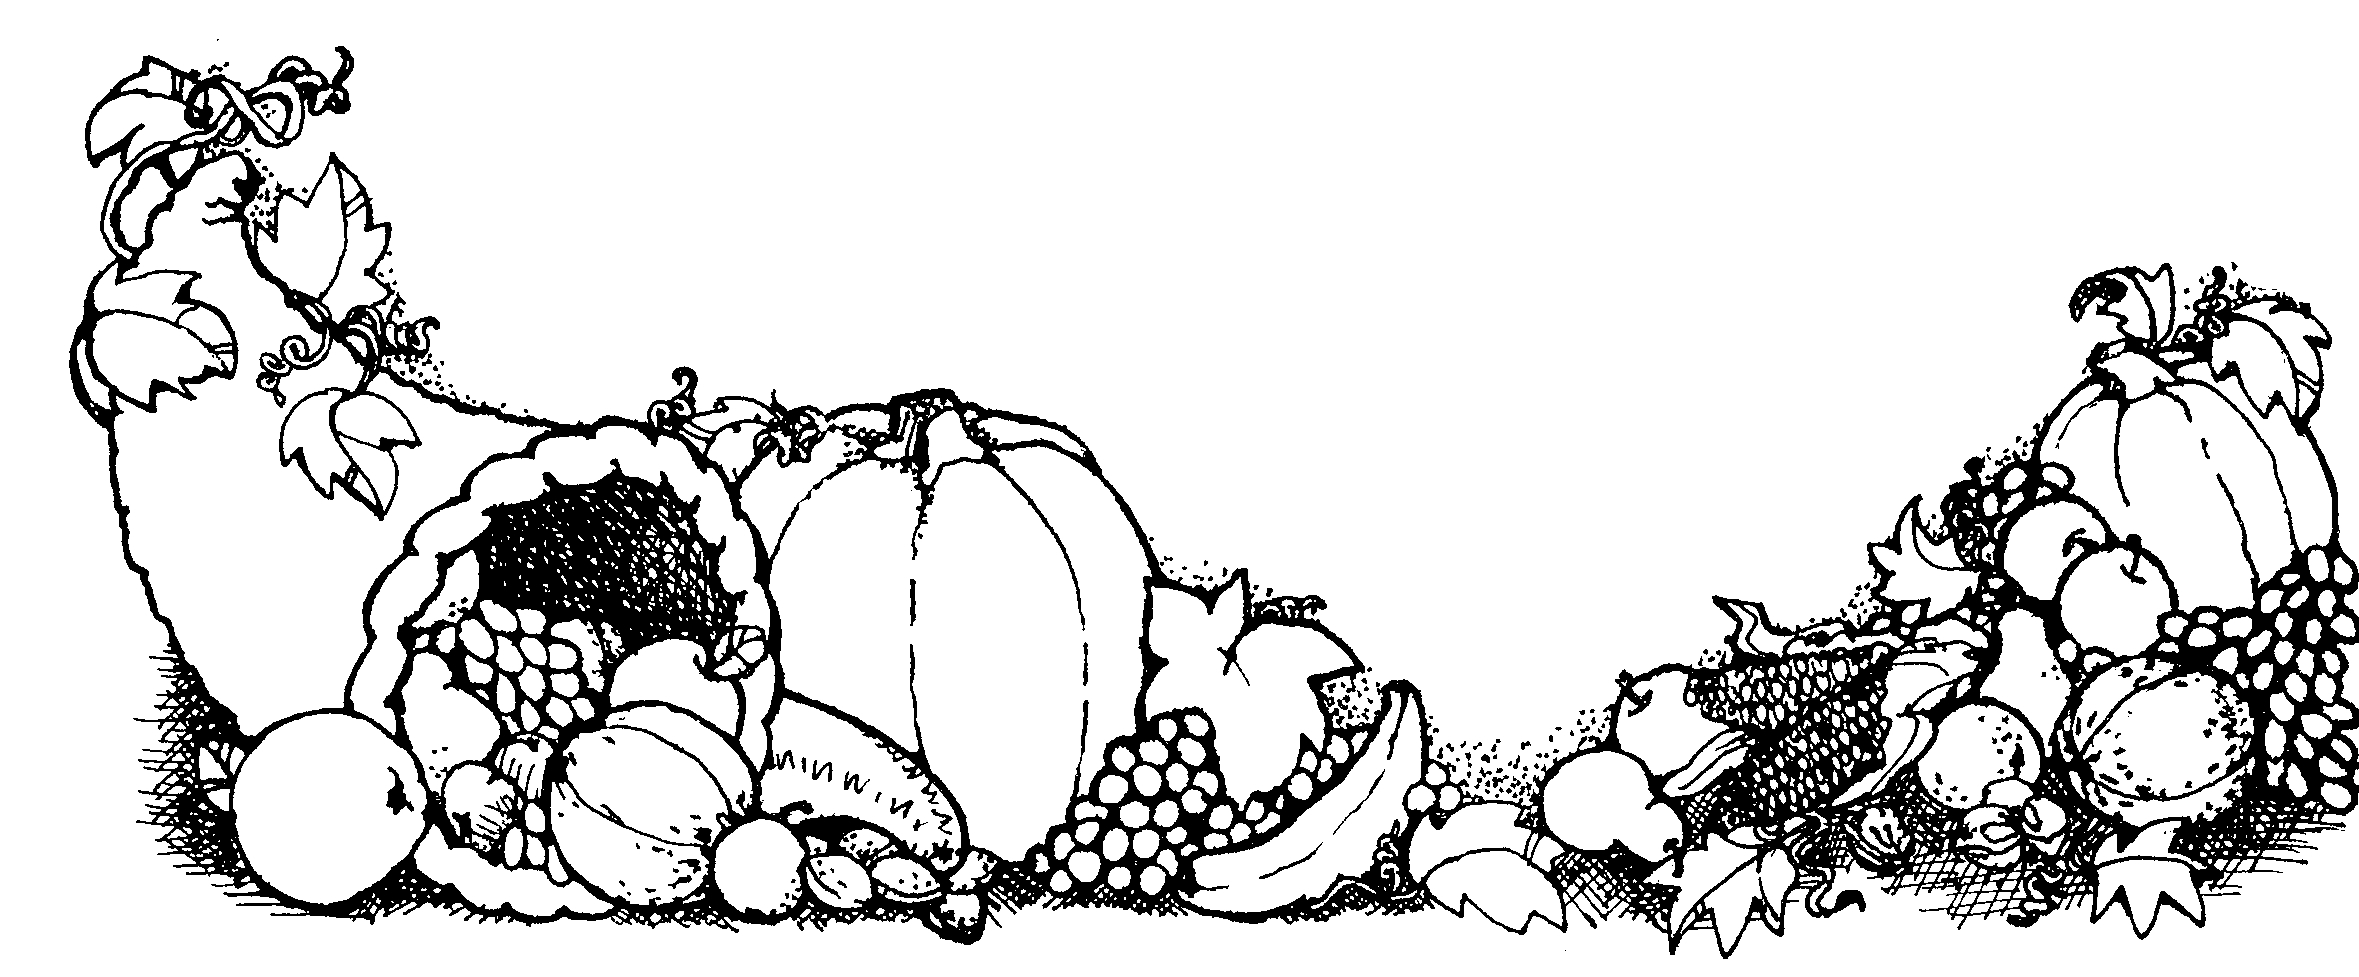 Turkey Dinner Clipart Black And White Em-Turkey Dinner Clipart Black And White Emma S Trend Fashion And Style-4